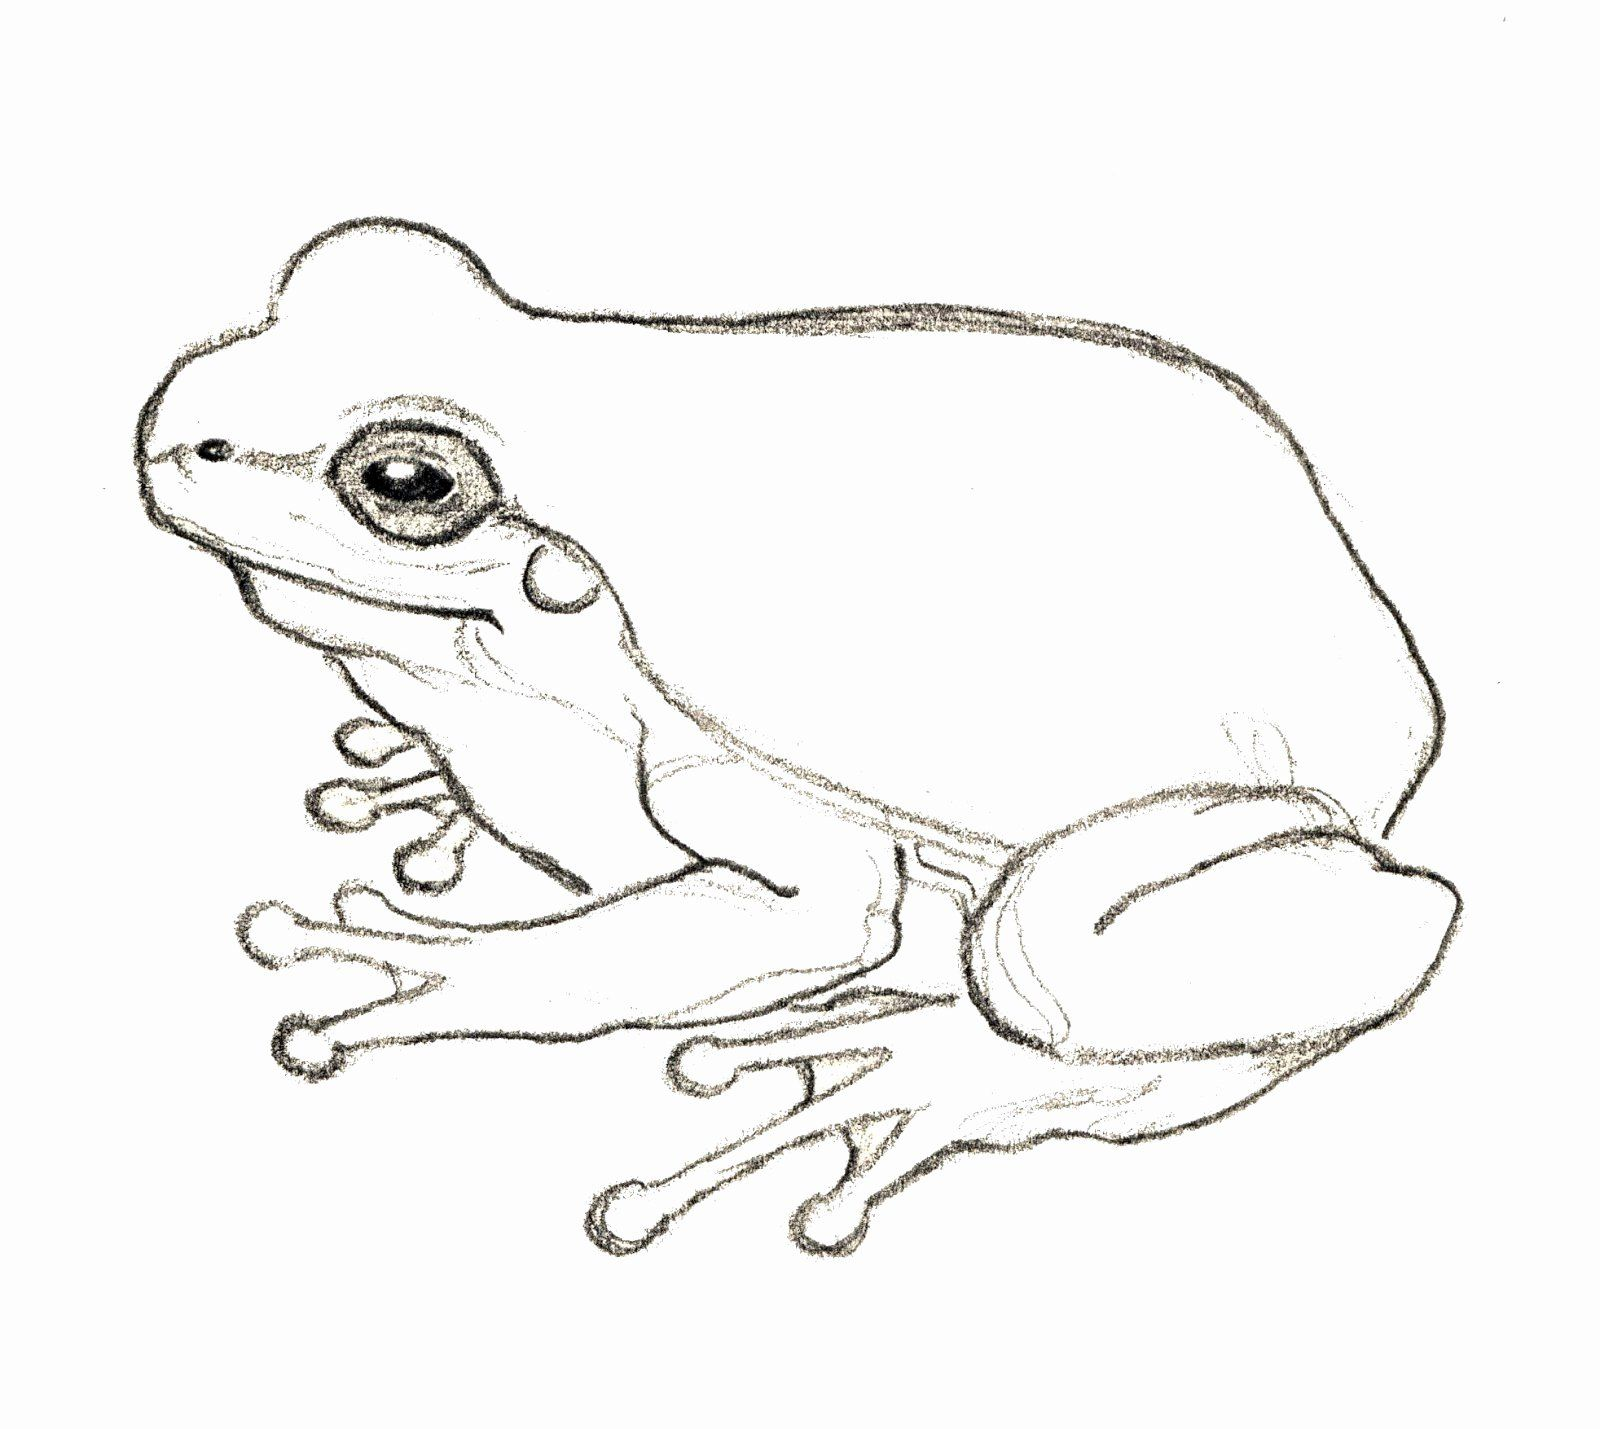 Coloring Page Tree Frog In 2020 Frog Drawing Frog Sketch Frog